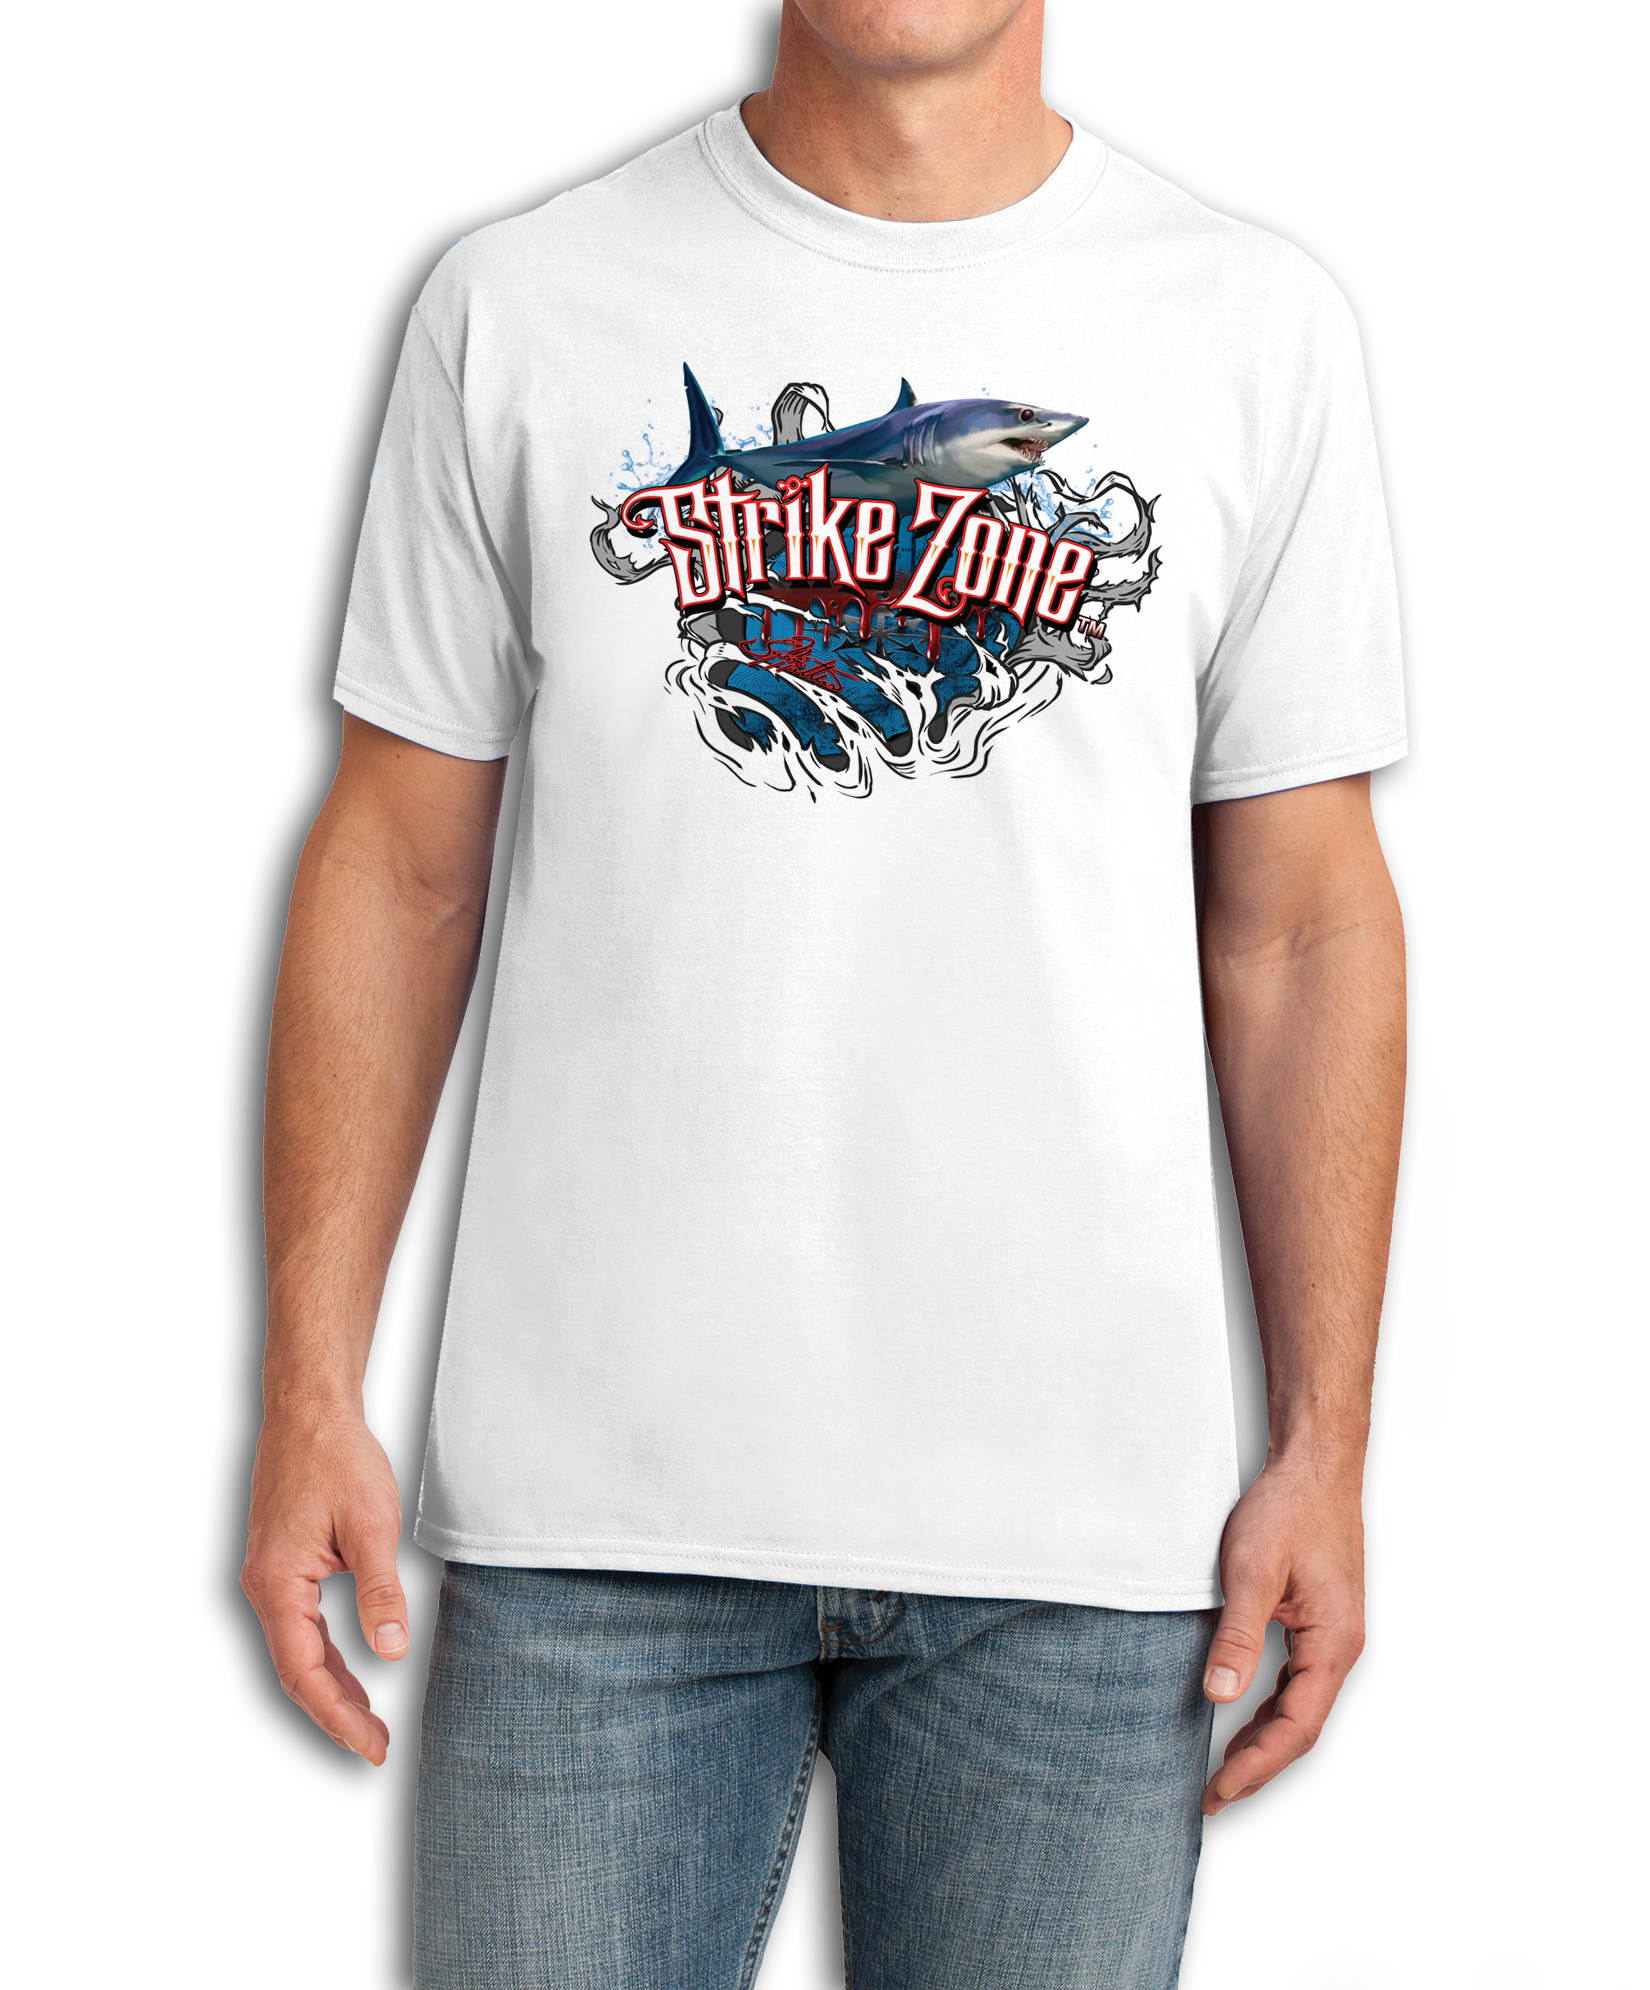 t-shirt-jason-mathias-cotton-white-mako-shark-front-chest.png